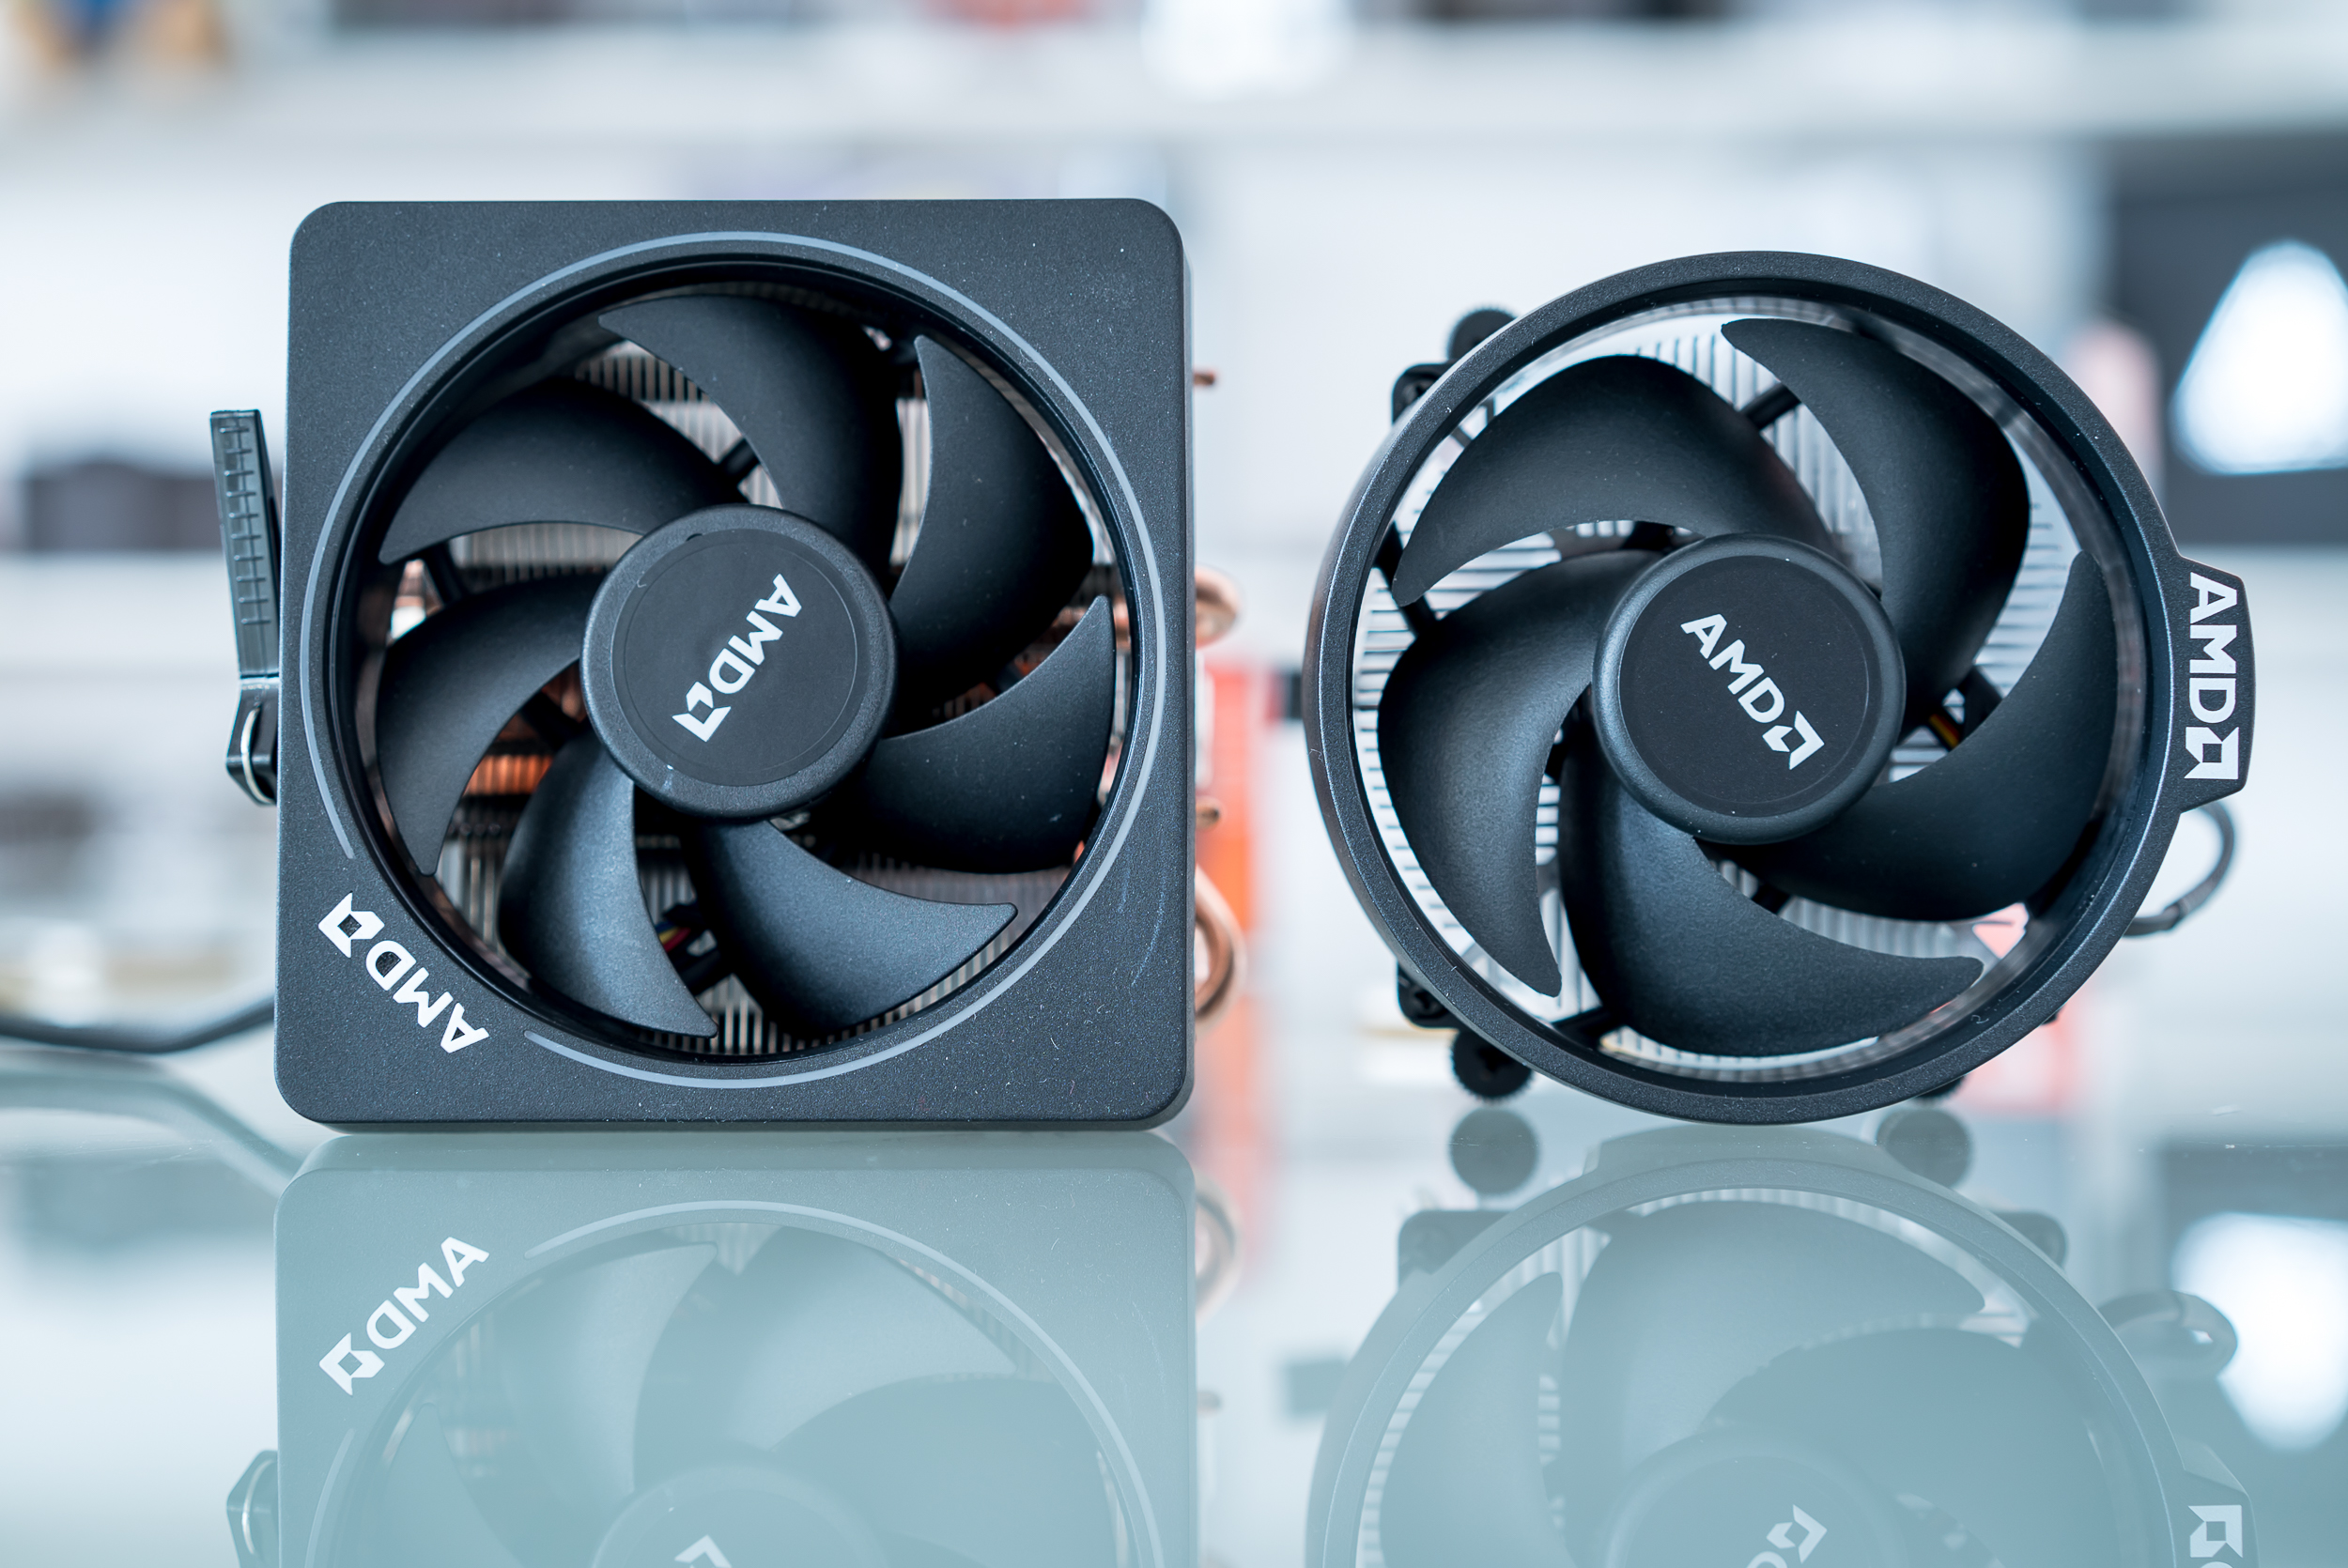 Certain retail Ryzen chips come packed with one of AMD's new air coolers.